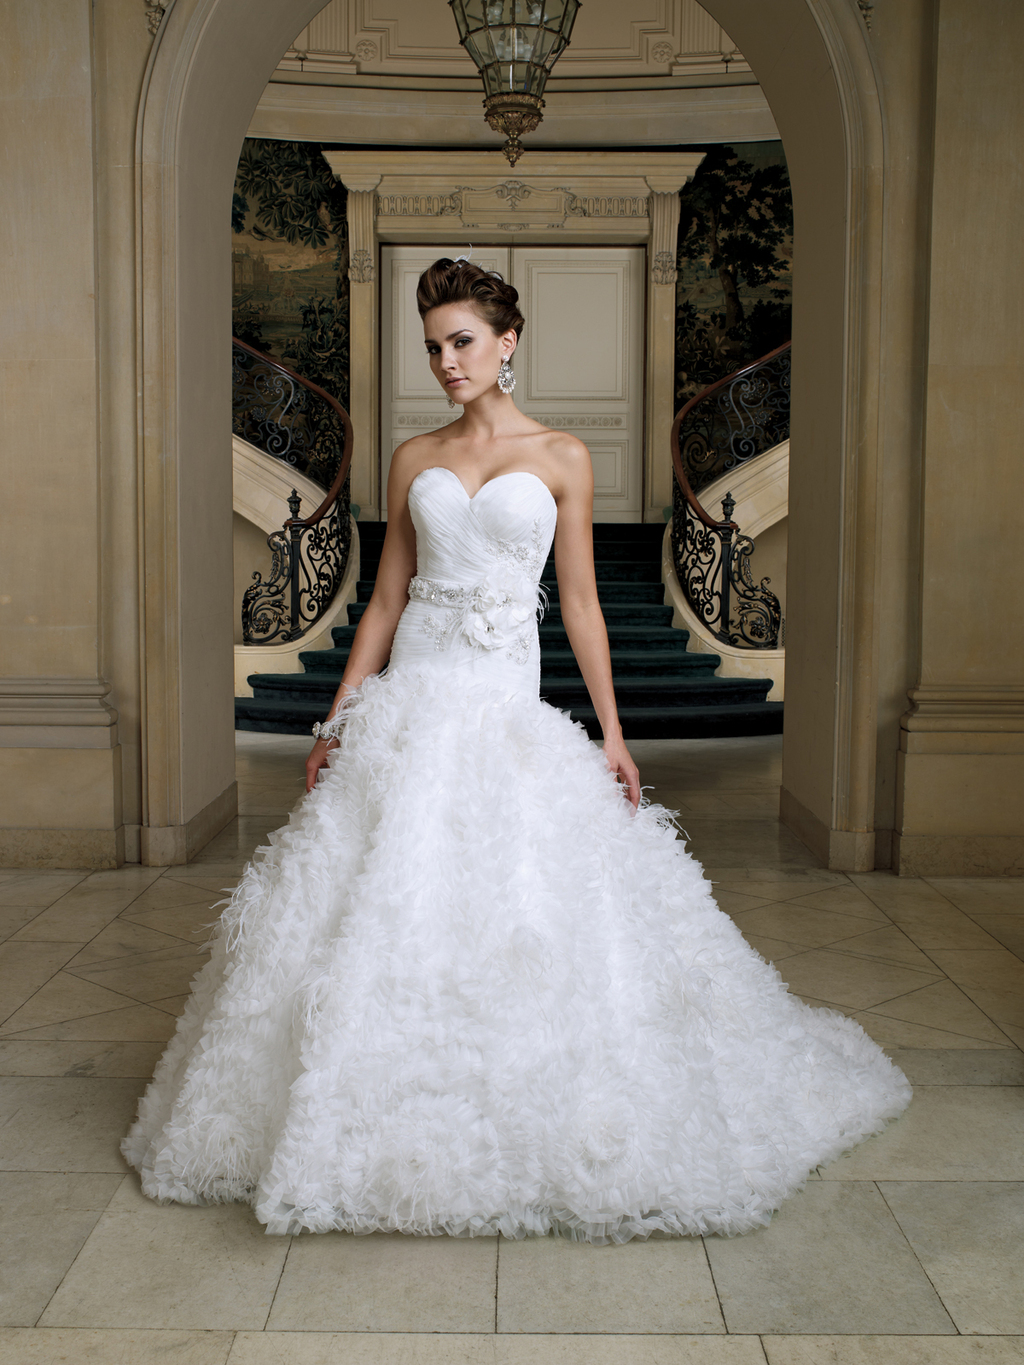 2012-wedding-dress-david-tutera-for-mon-cheri-bridal-gowns-112204.full